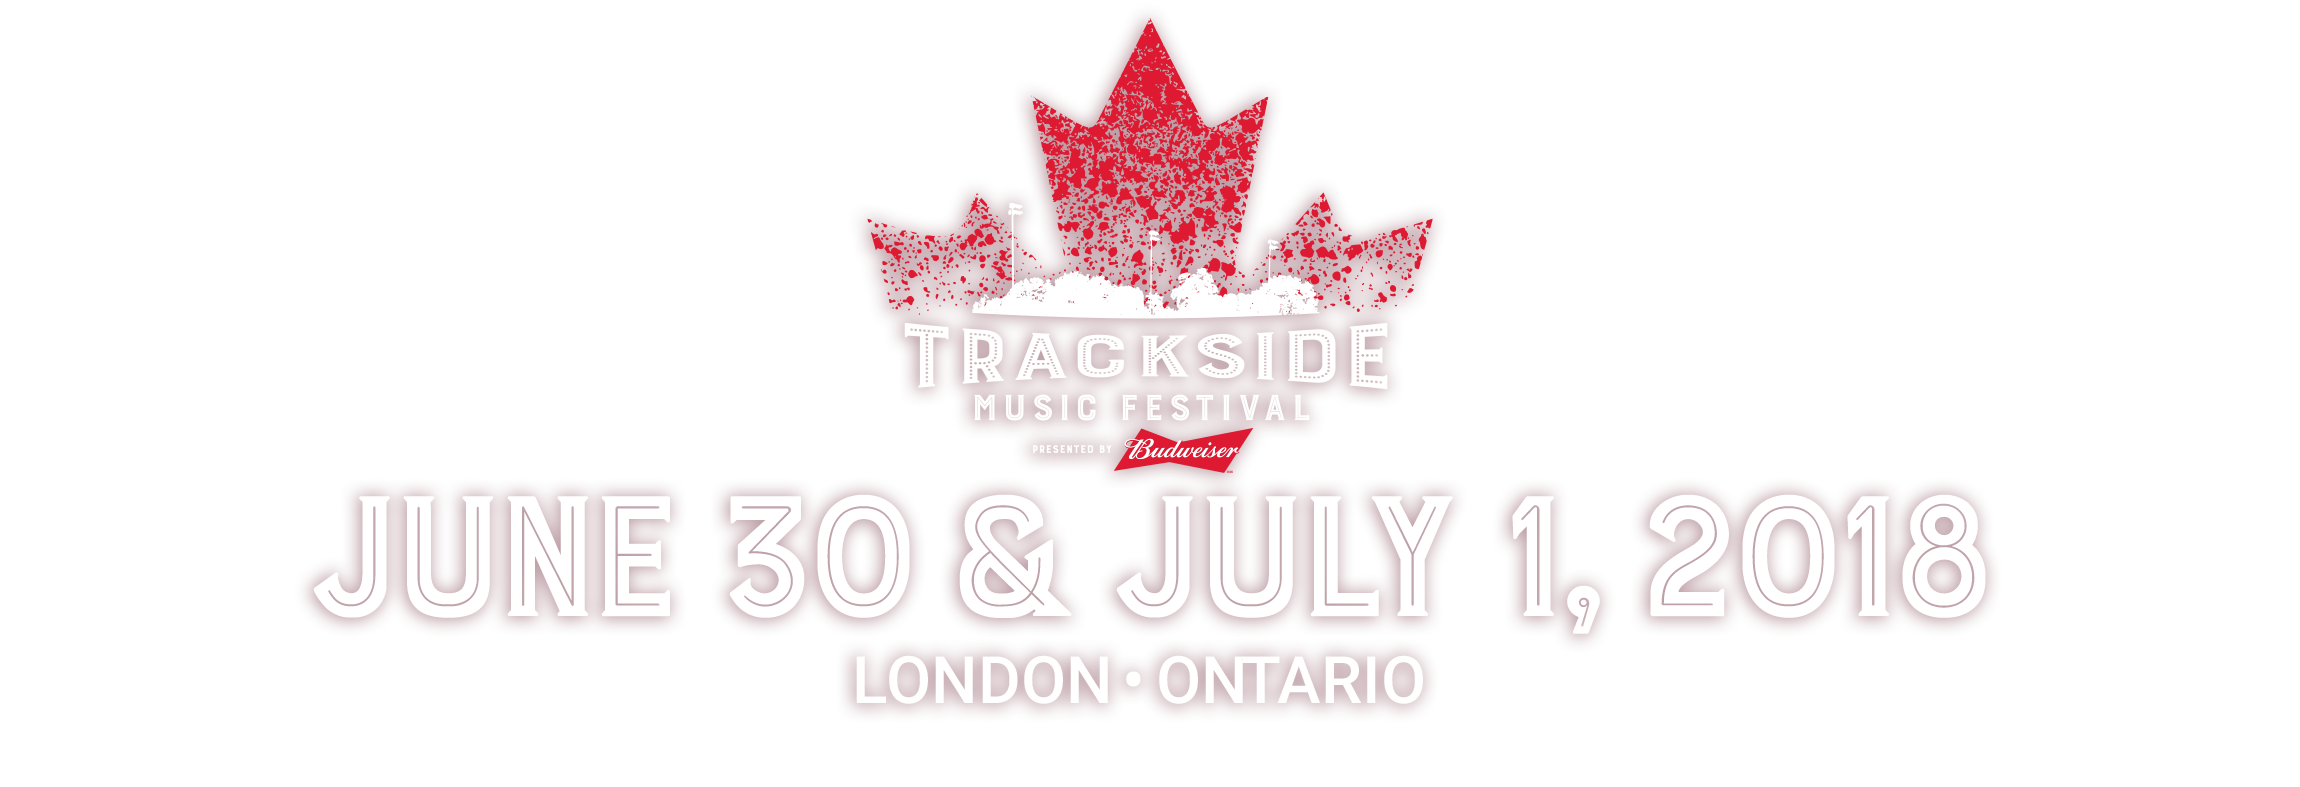 Trackside Music Festival: June 30 & July 1, 2018 | London, ON